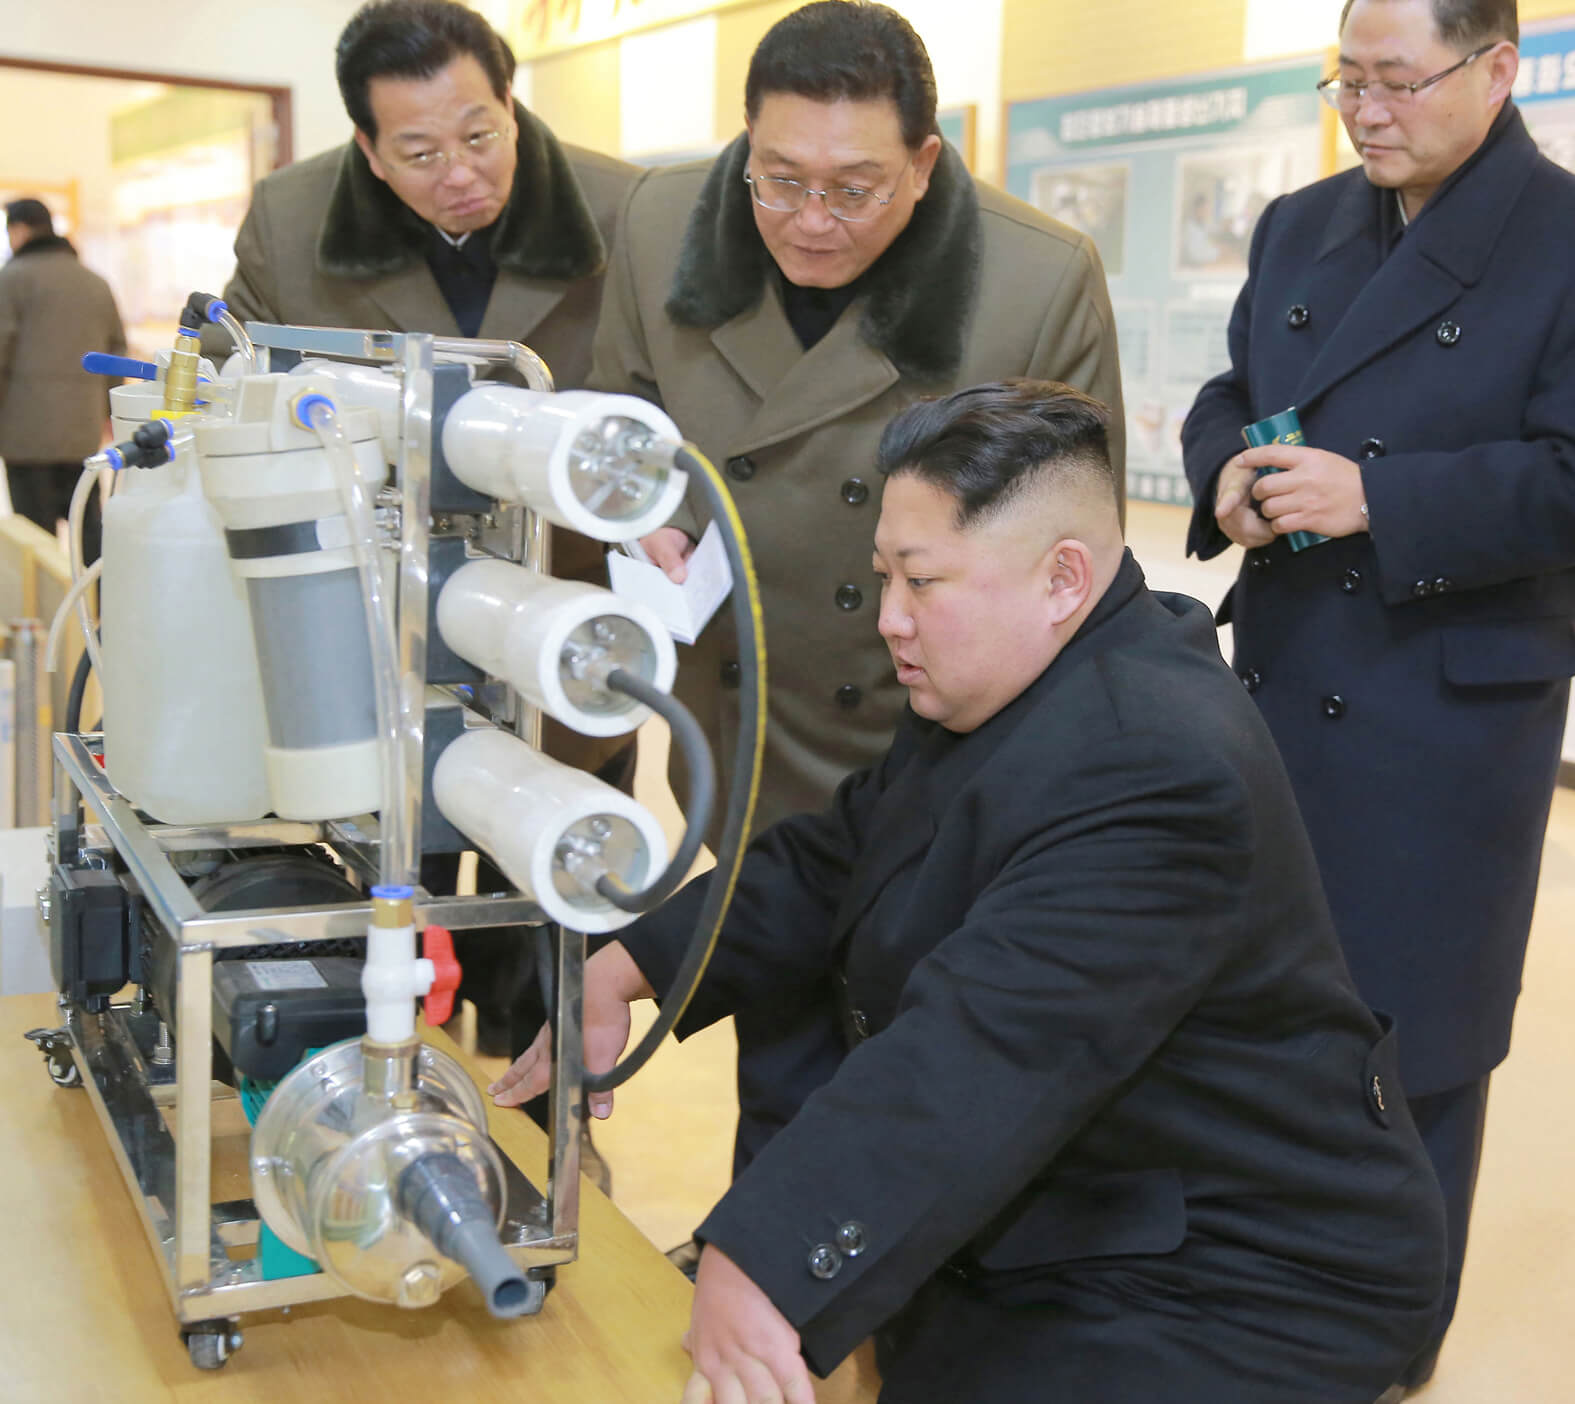 Kim Jong Un giving field guidance at the State Academy of Sciences in January 2018